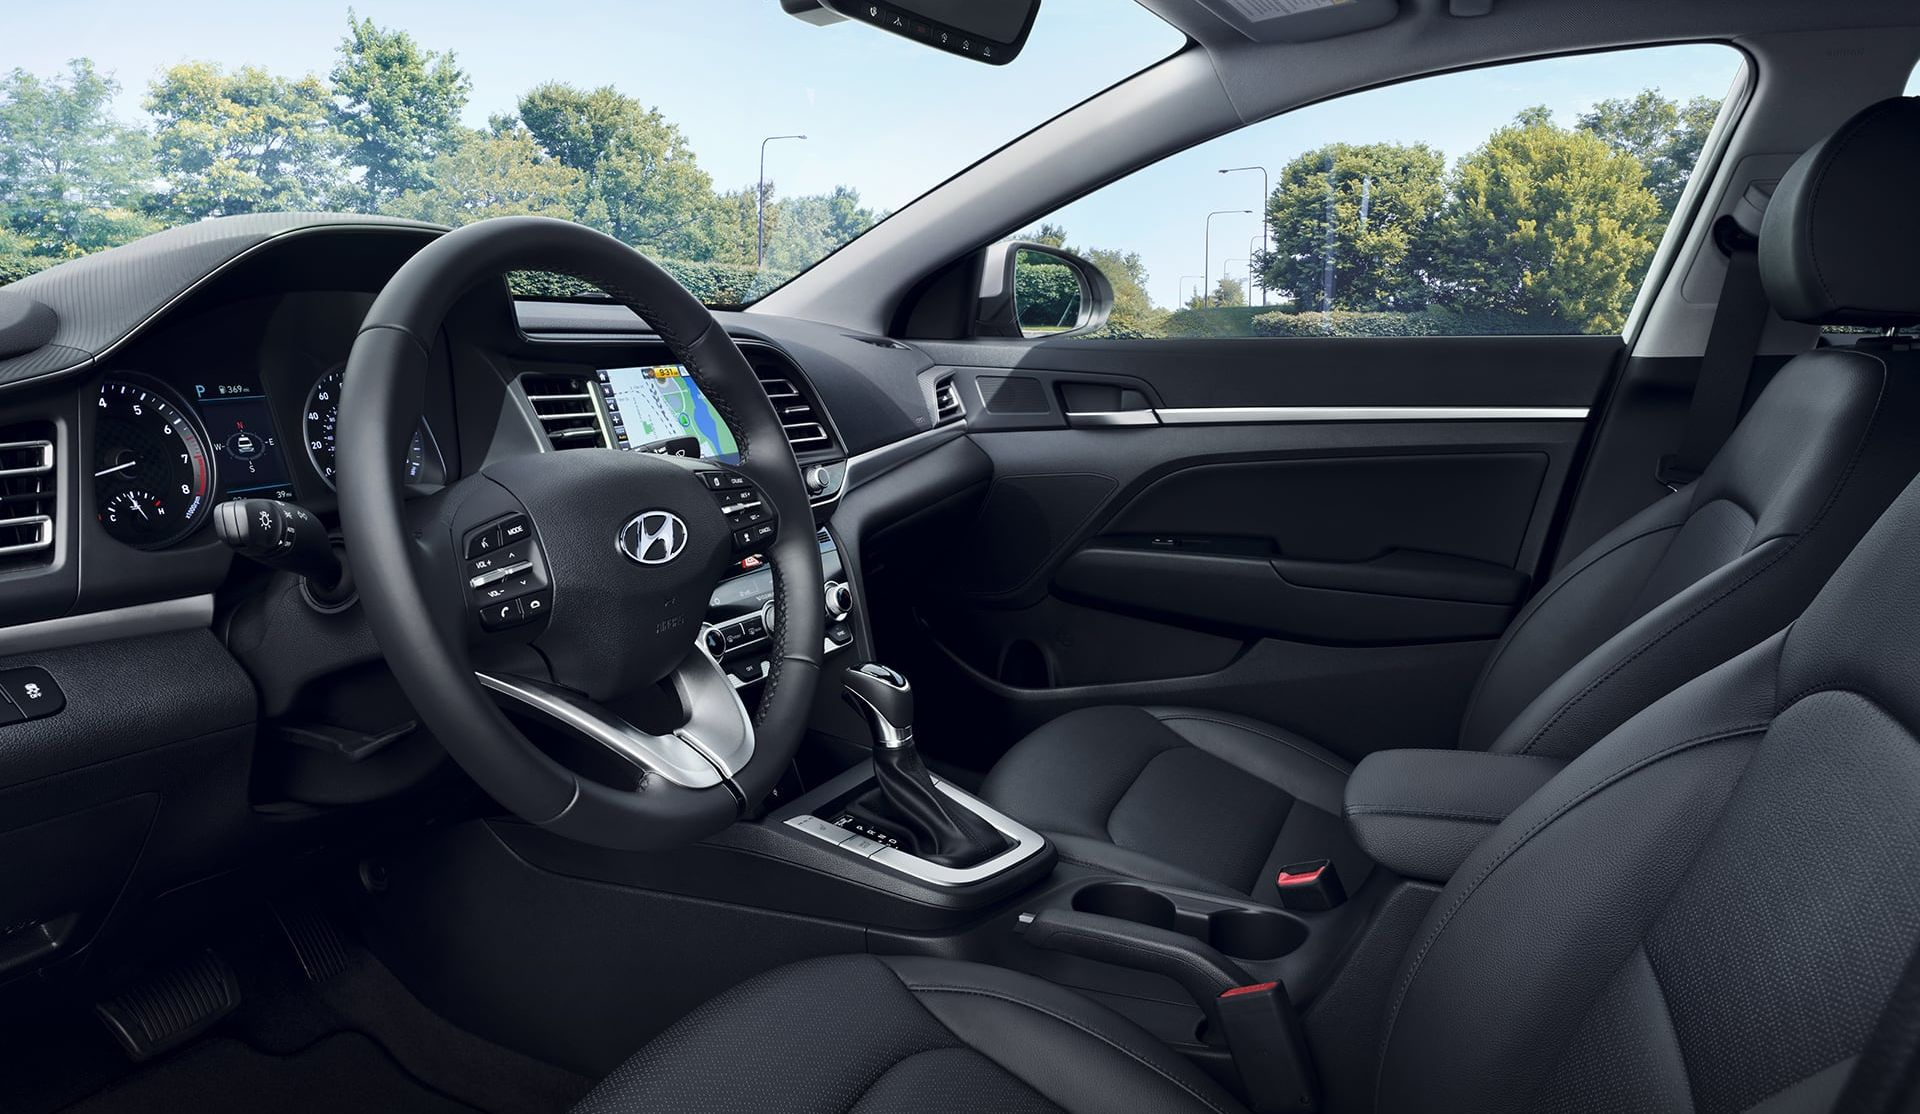 Upscale Cabin of the 2019 Hyundai Elantra